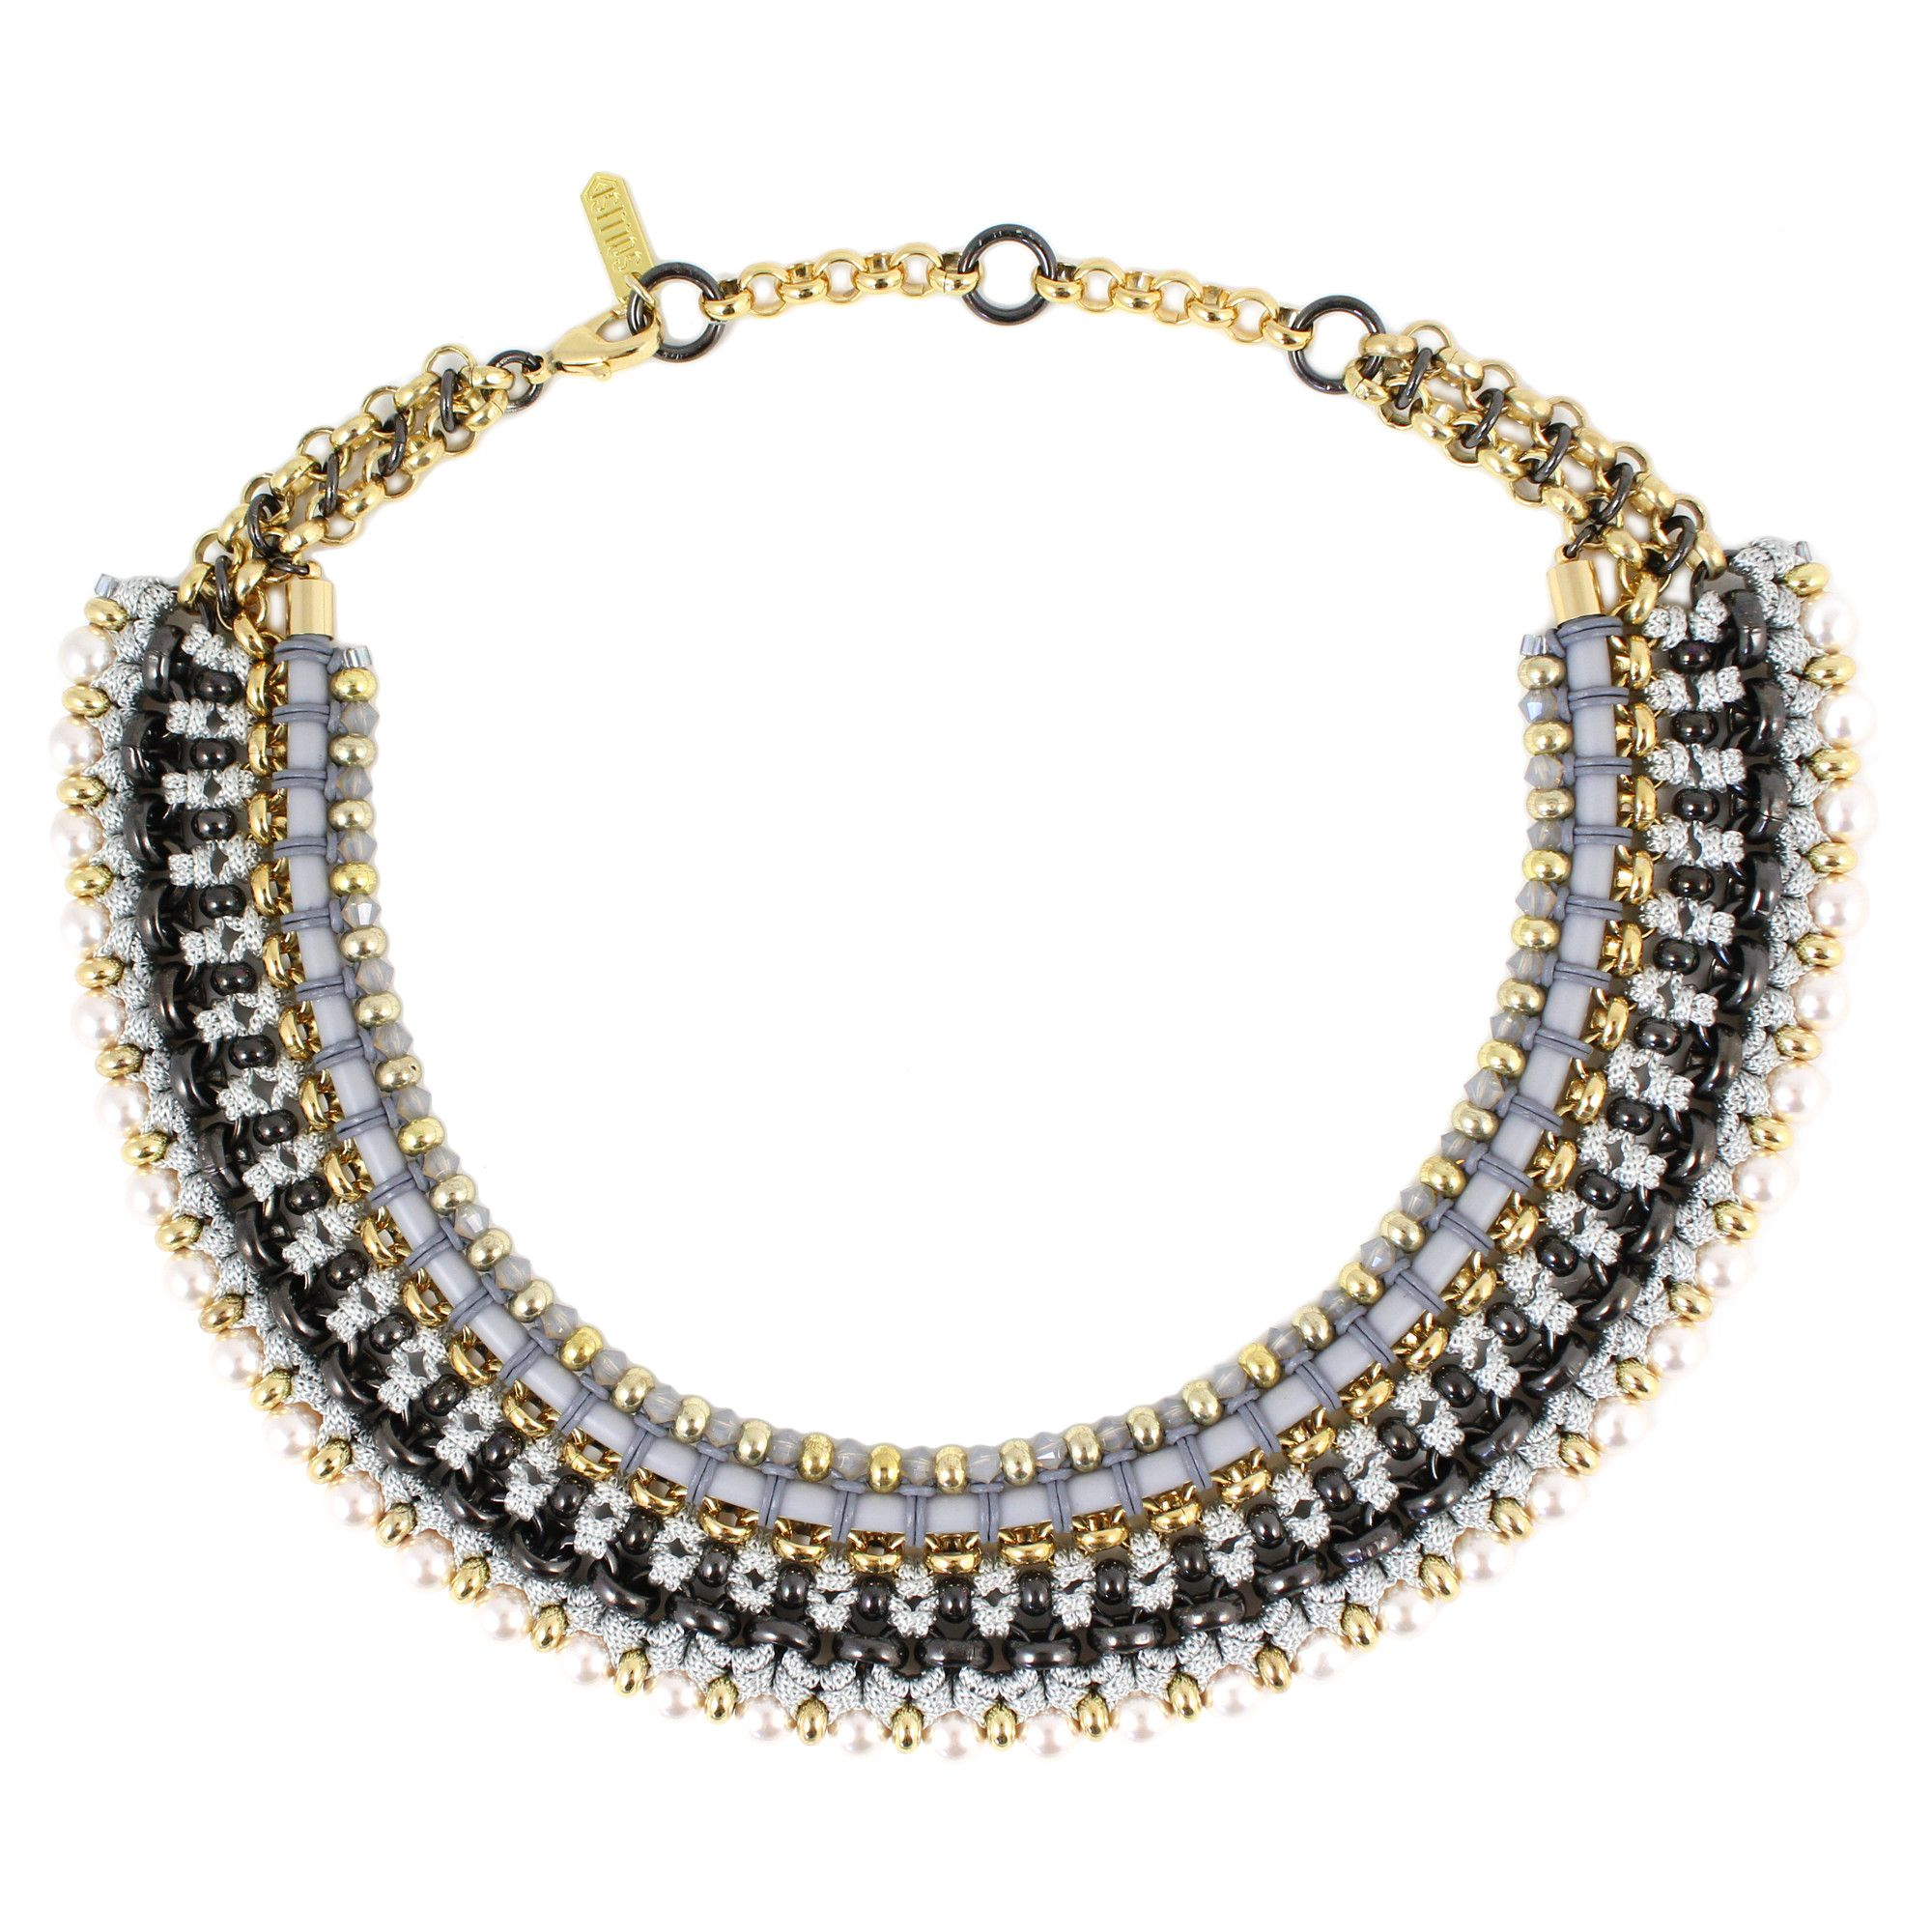 Omo necklace >>> PRE-ORDER ONLY from SOLLIS